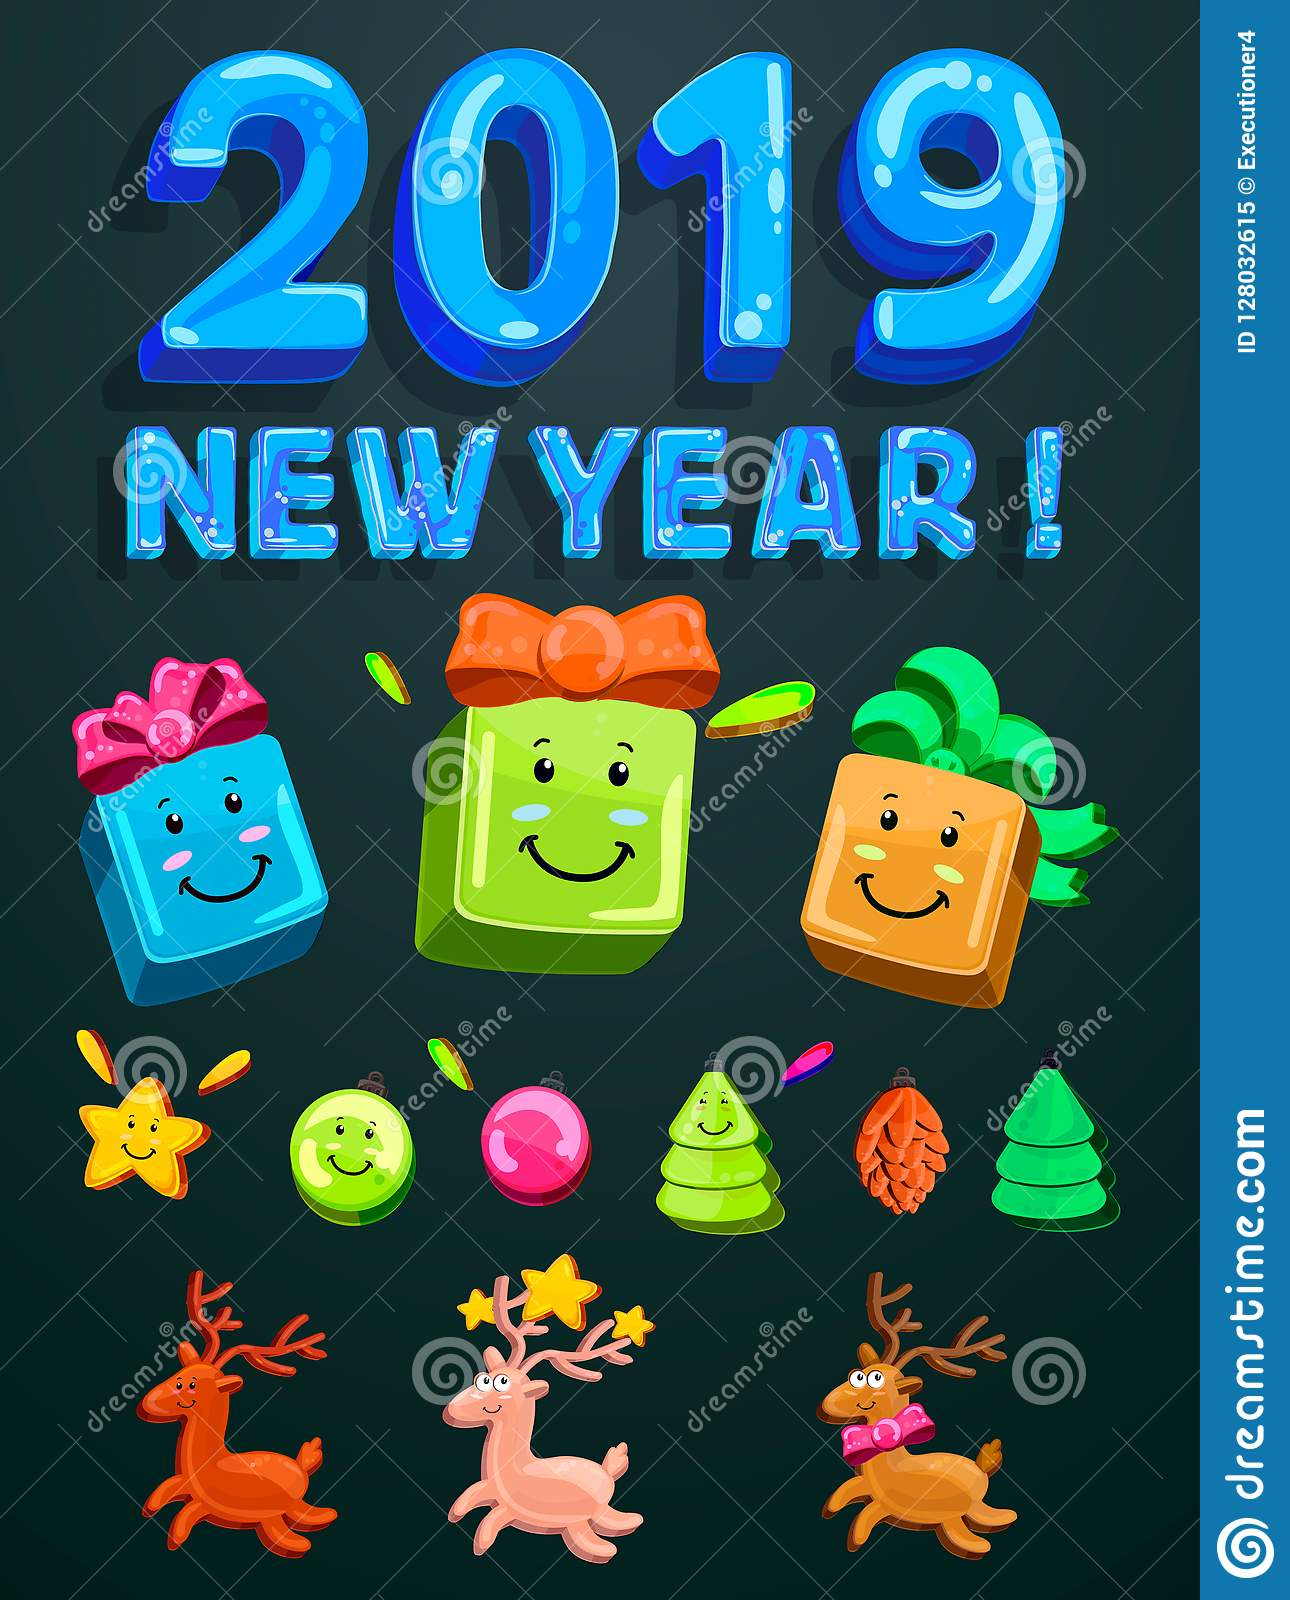 Merry Christmas And Happy New Year 2019 Greeting Card. Funny Numbers And Gifts. Bright Vector ...